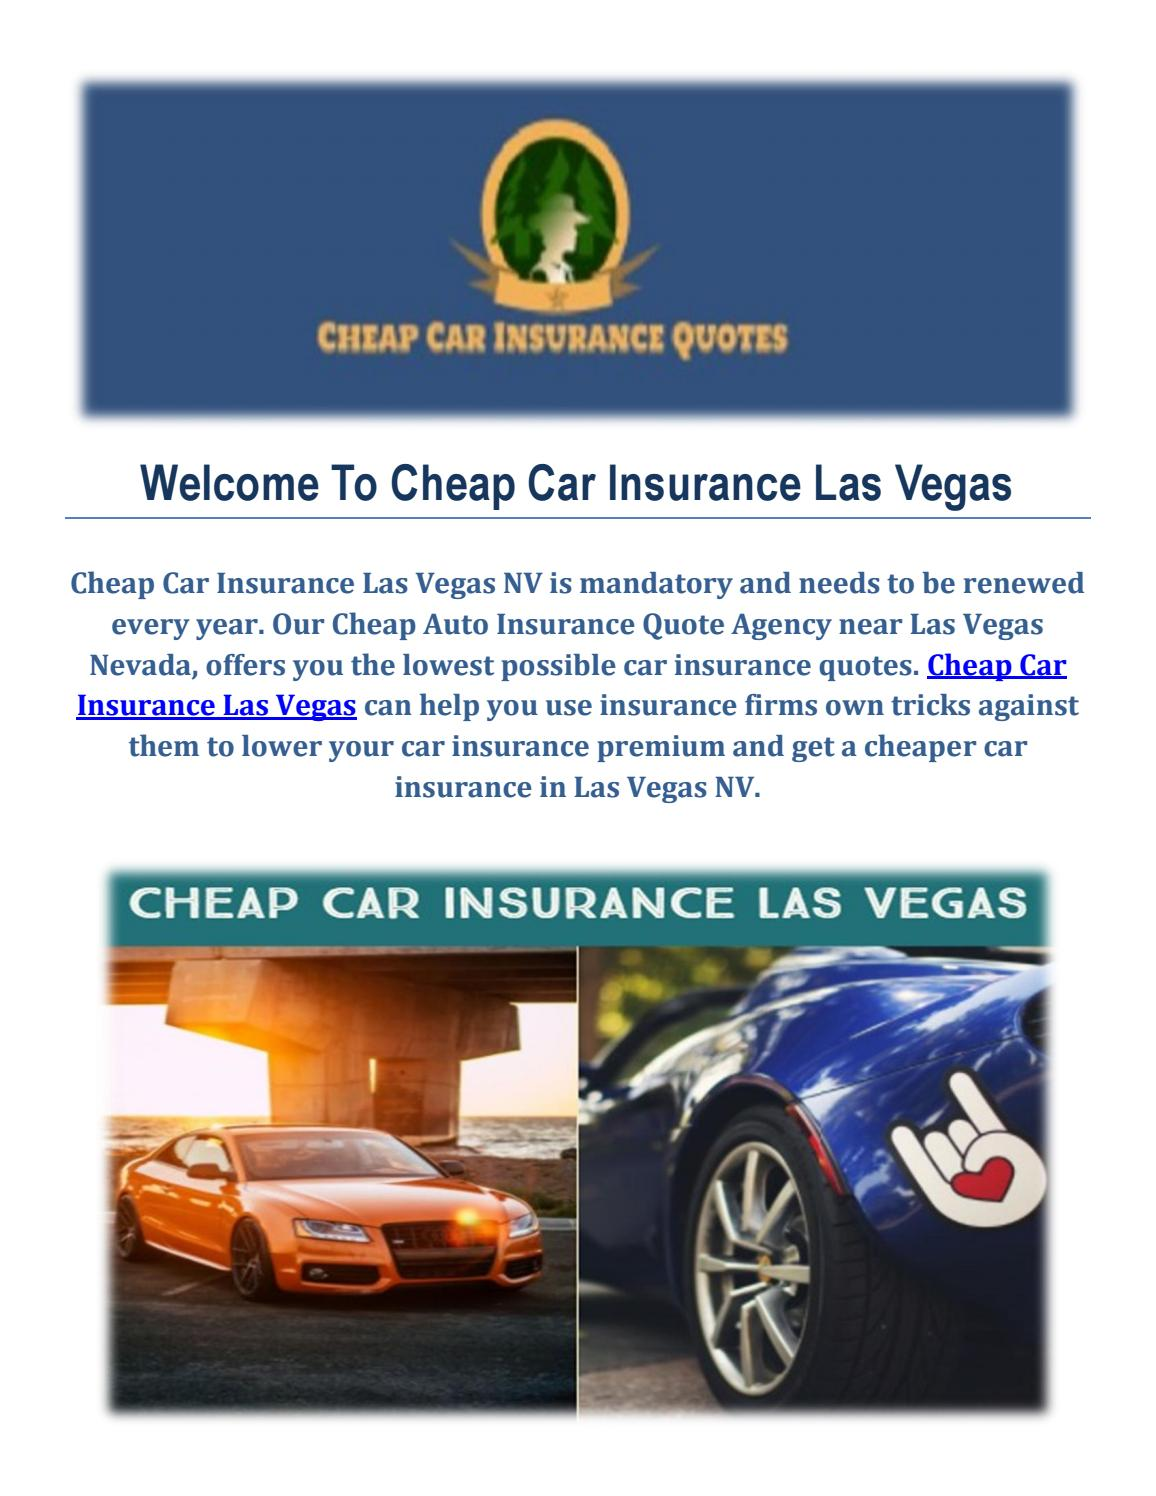 Get Cheap Insurance Get Cheap Car Insurance Quotes In Las Vegas By Cheap Car Insurance